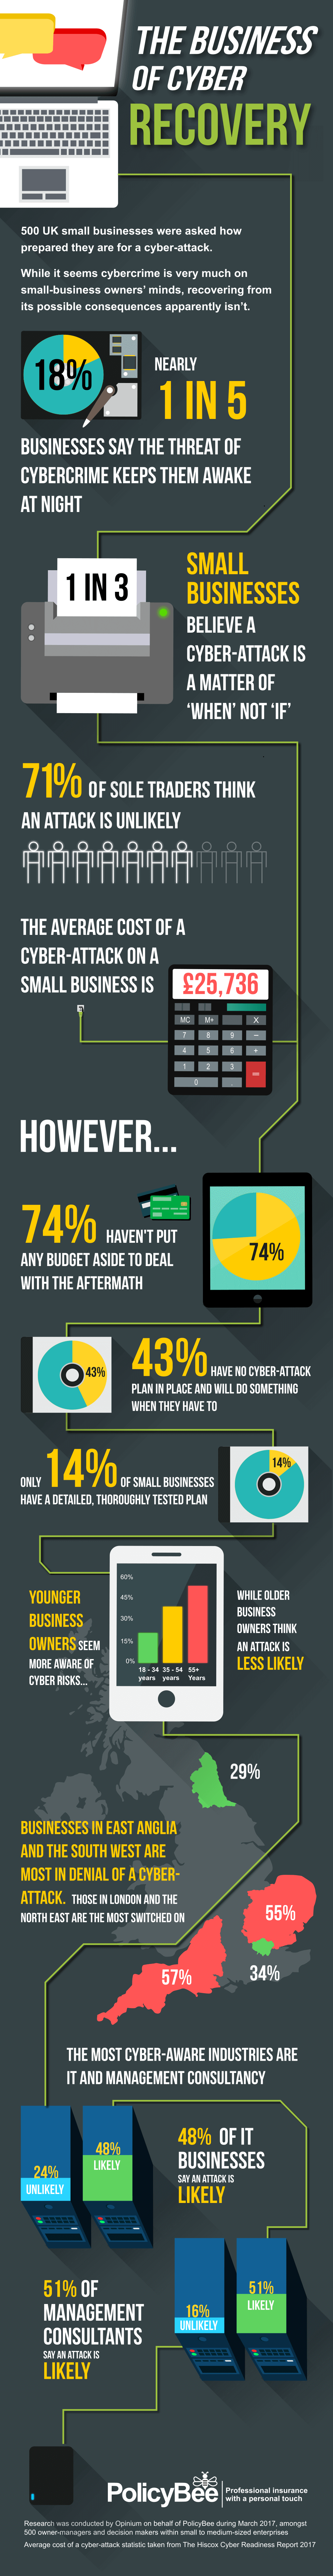 PolicyBee SME cyber security infographic